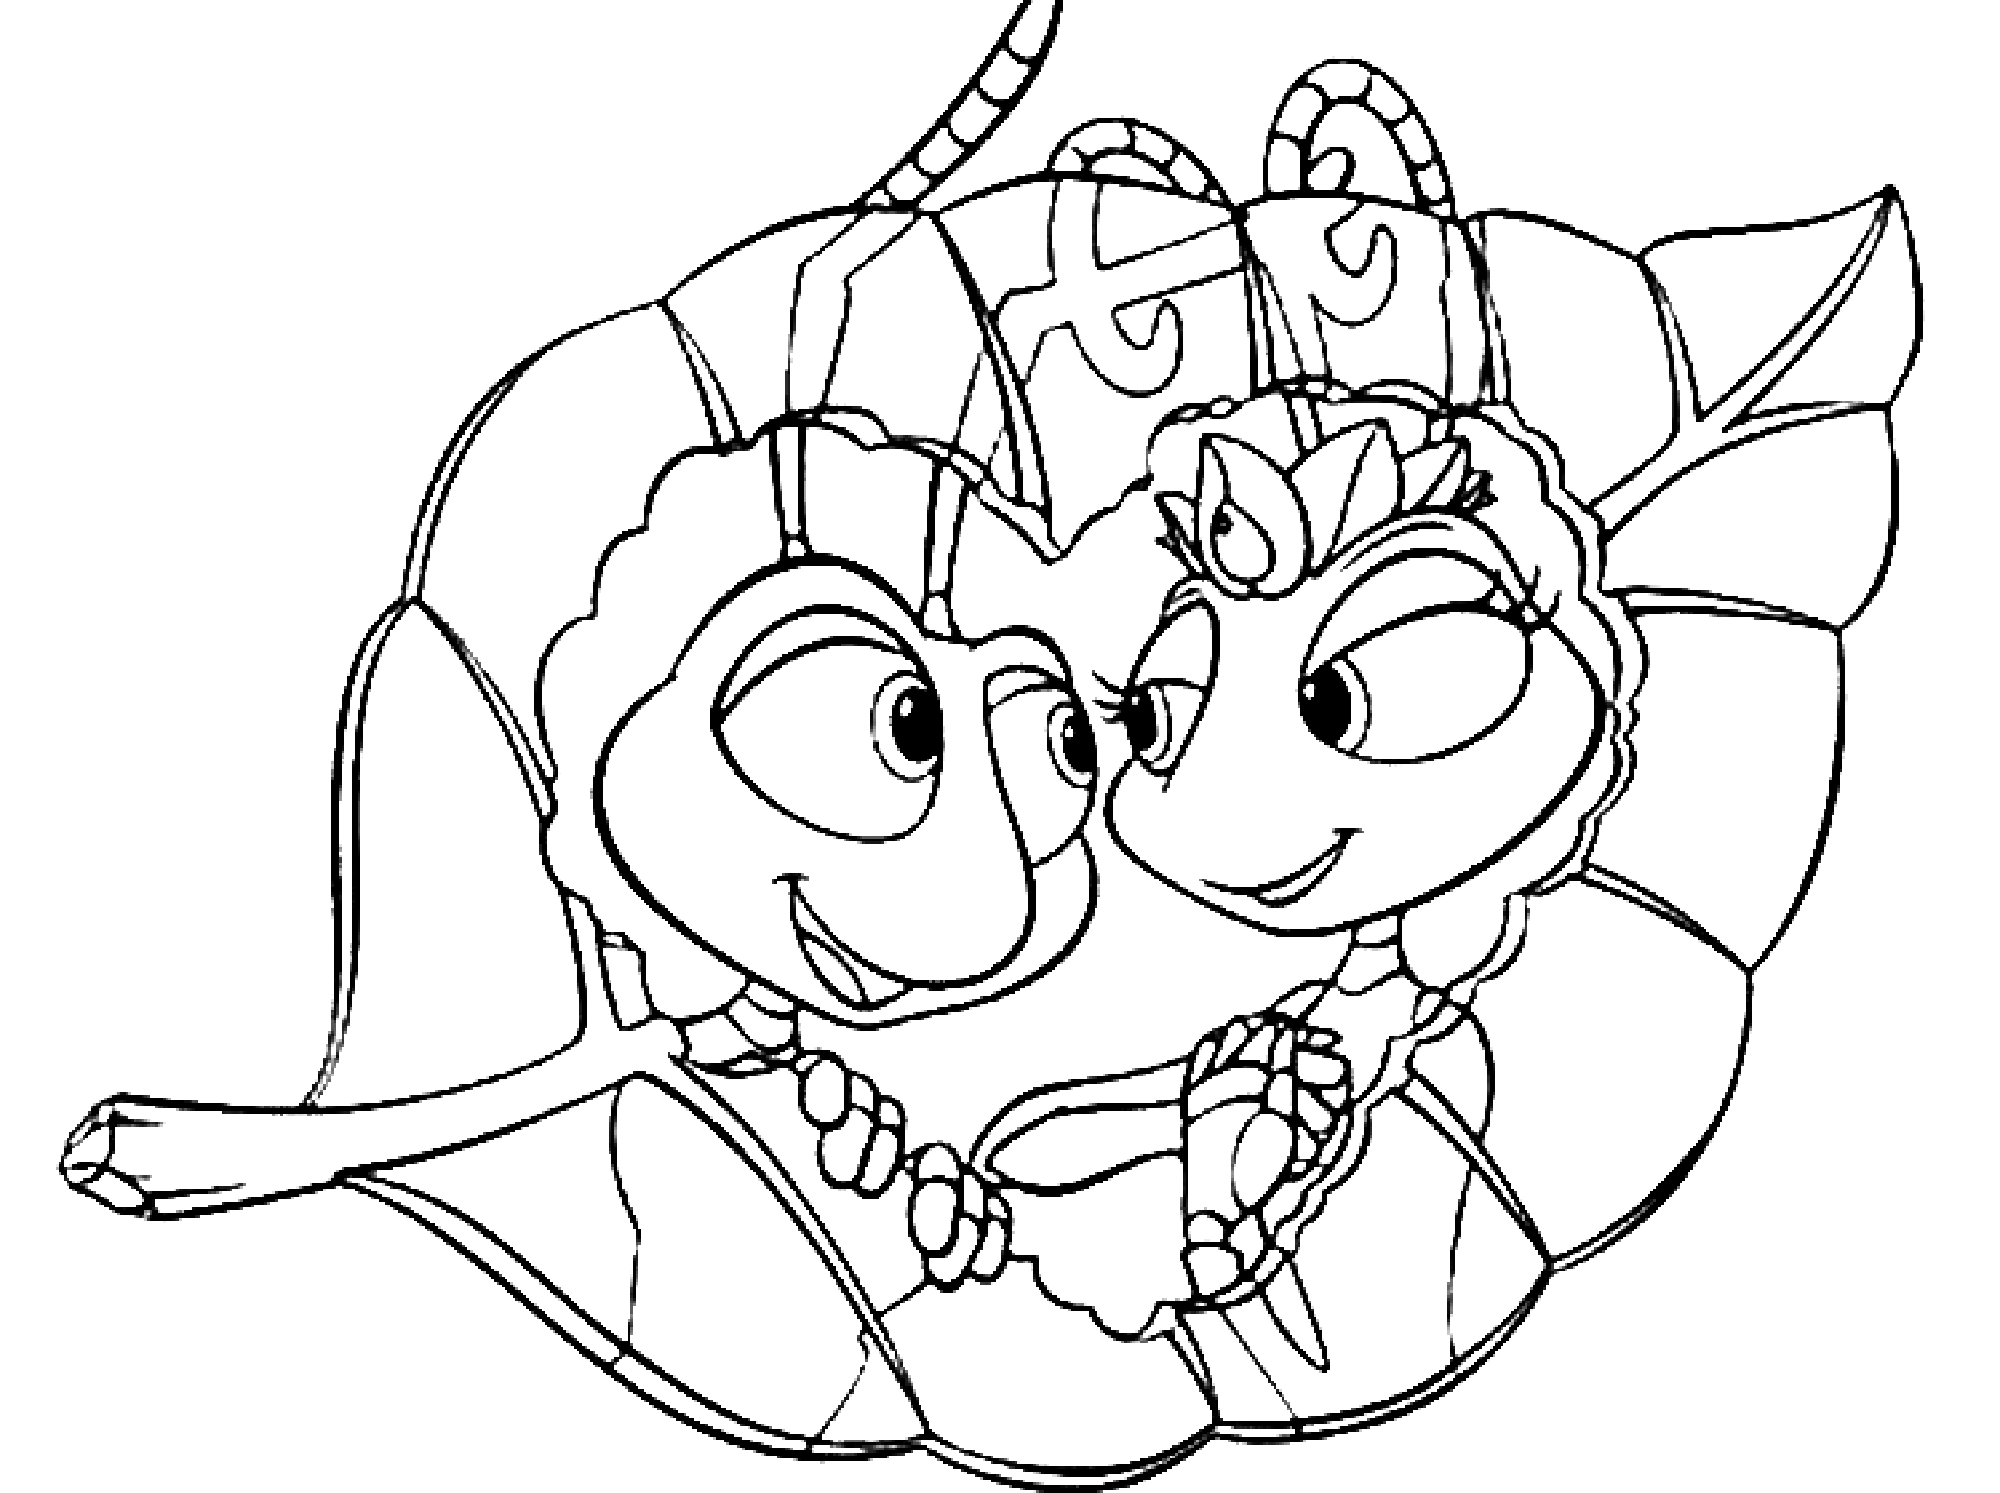 bugs life coloring pages a bugs life for kids a bugs life kids coloring pages life pages coloring bugs